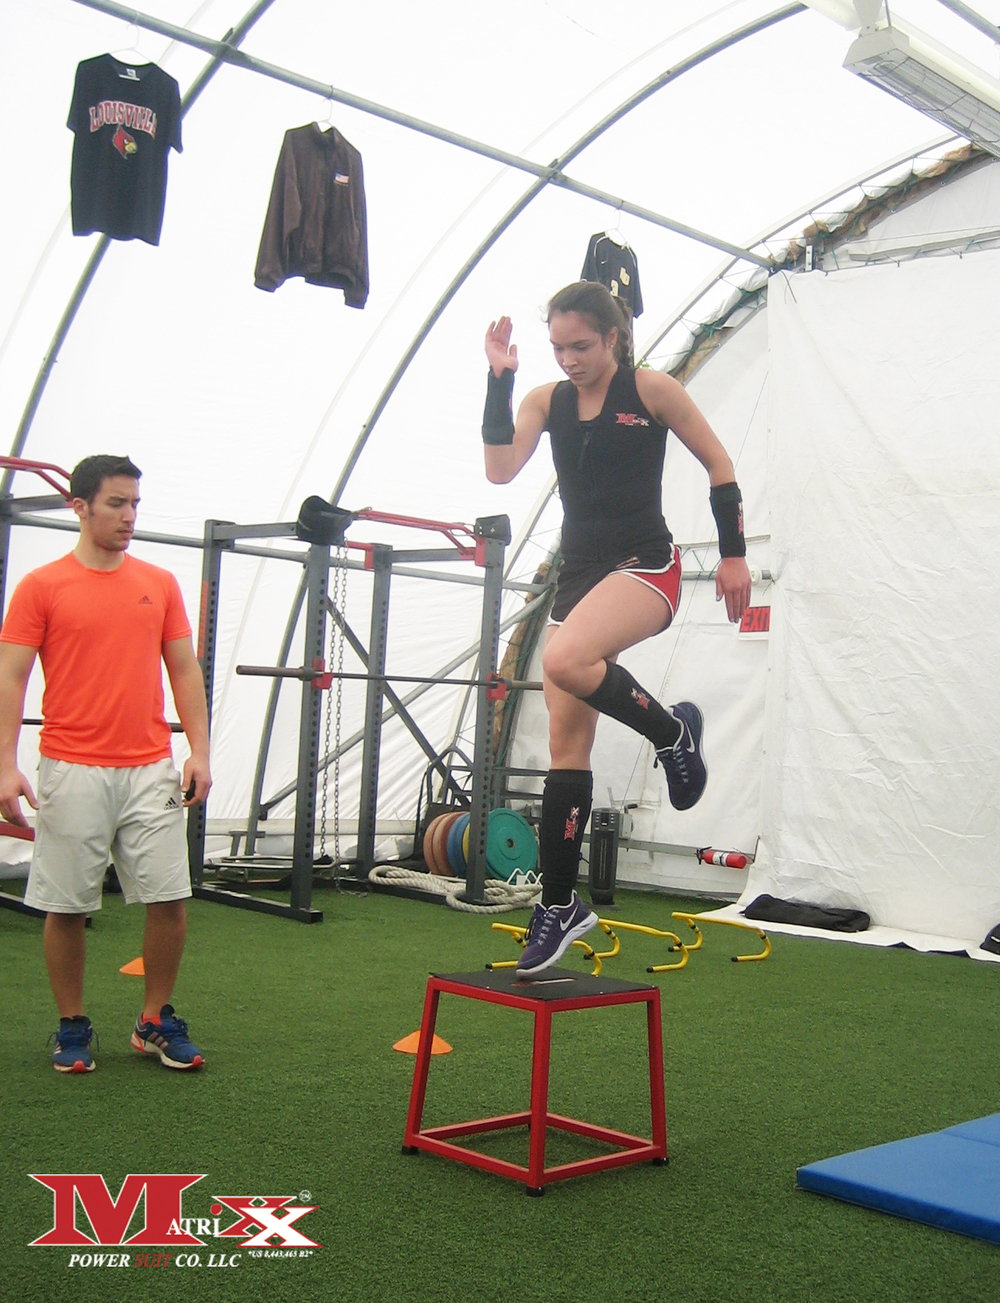 Indoor training photo box jump.jpg